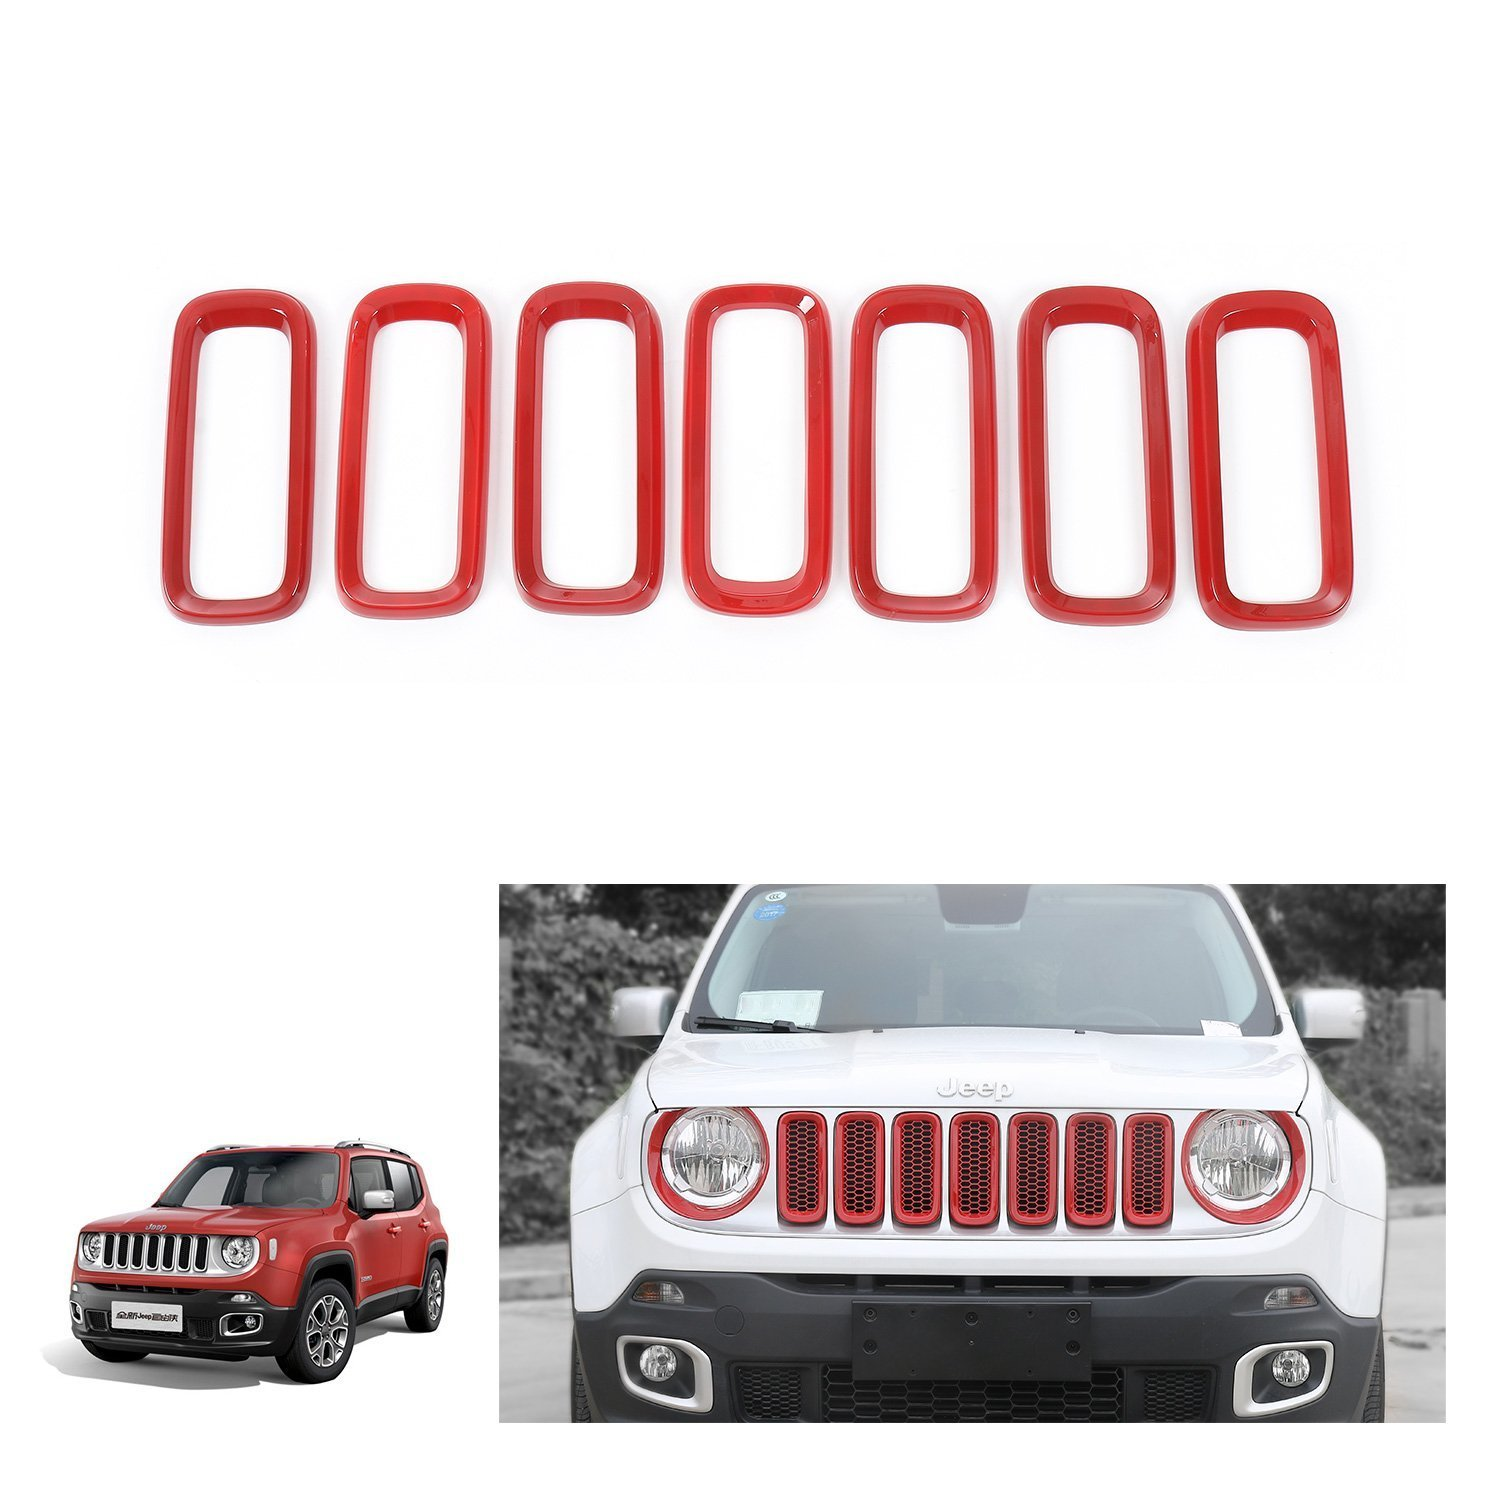 I-shop 7 pcs ABS avant Grill Grille inserts